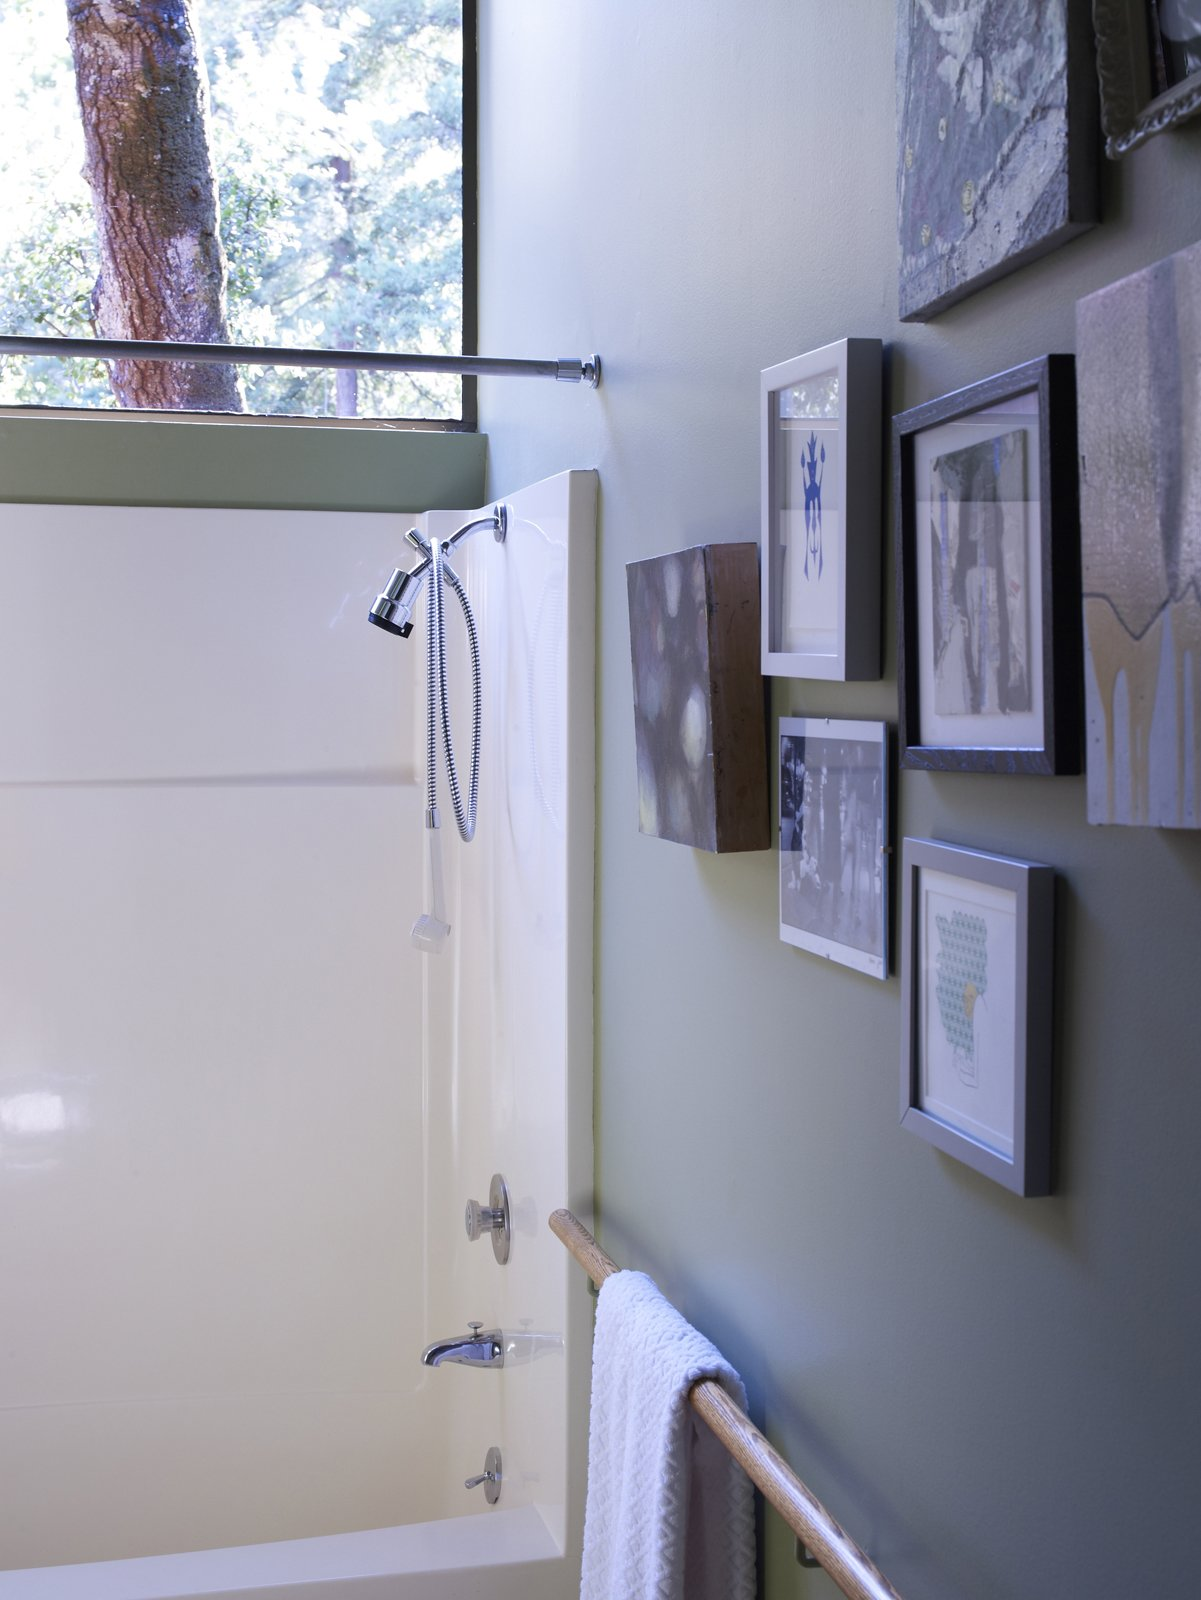 A salon-style hanging of art and the wooden handrail-cum-towel rack give the bathroom a handful of subtly stylish touches.  Photo 14 of 20 in You Don't Have to Just Be at Your Desk When Working from Home